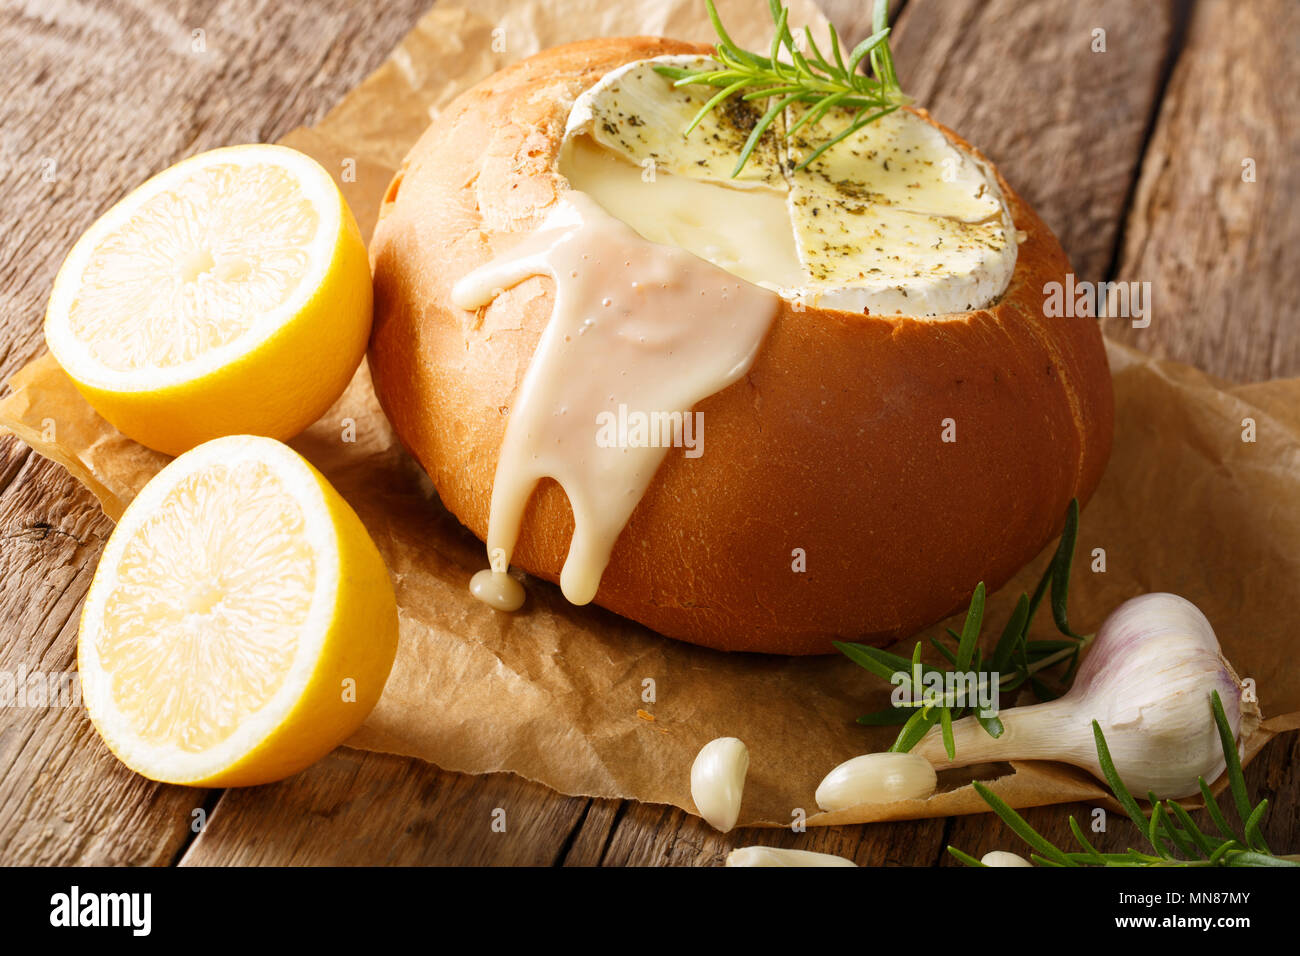 Rustic fondue in bread with melted camembert cheese close-up on the table. horizontal - Stock Image